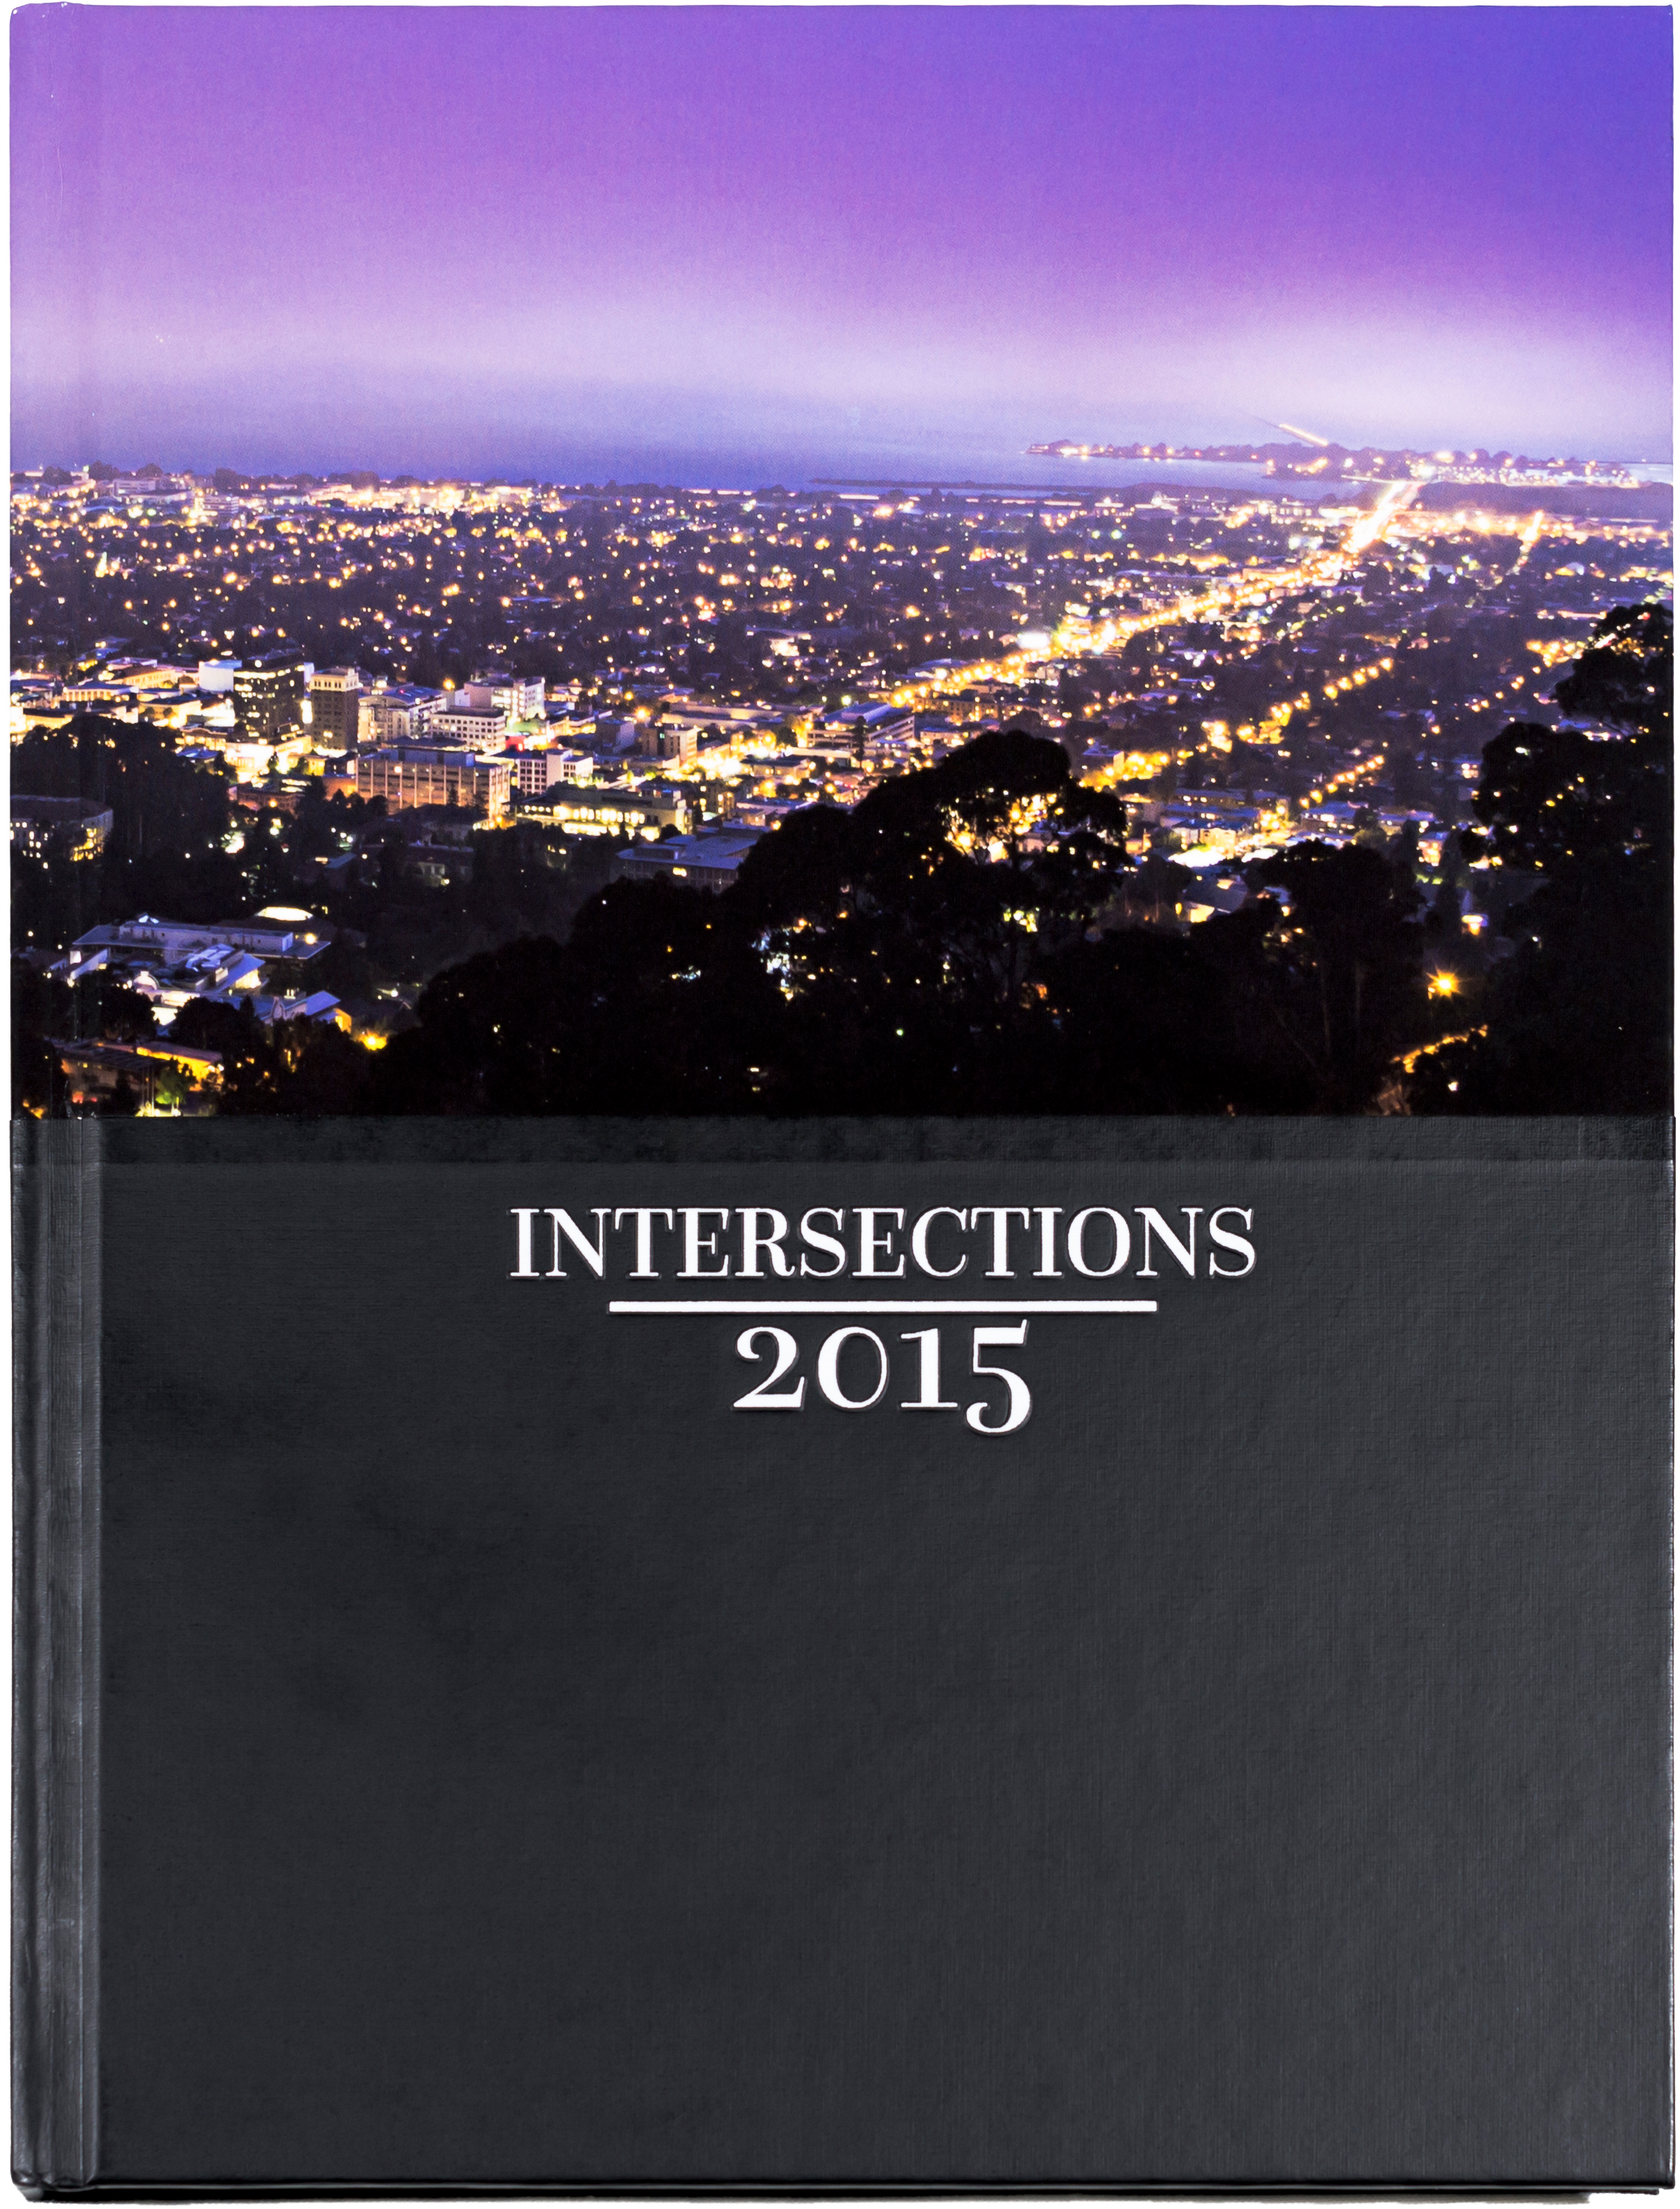 Yearbook cover with title 'Intersections' and date 2015. The top half of the cover features a photo overlooking the eastern part of the San Francisco Bay Area.